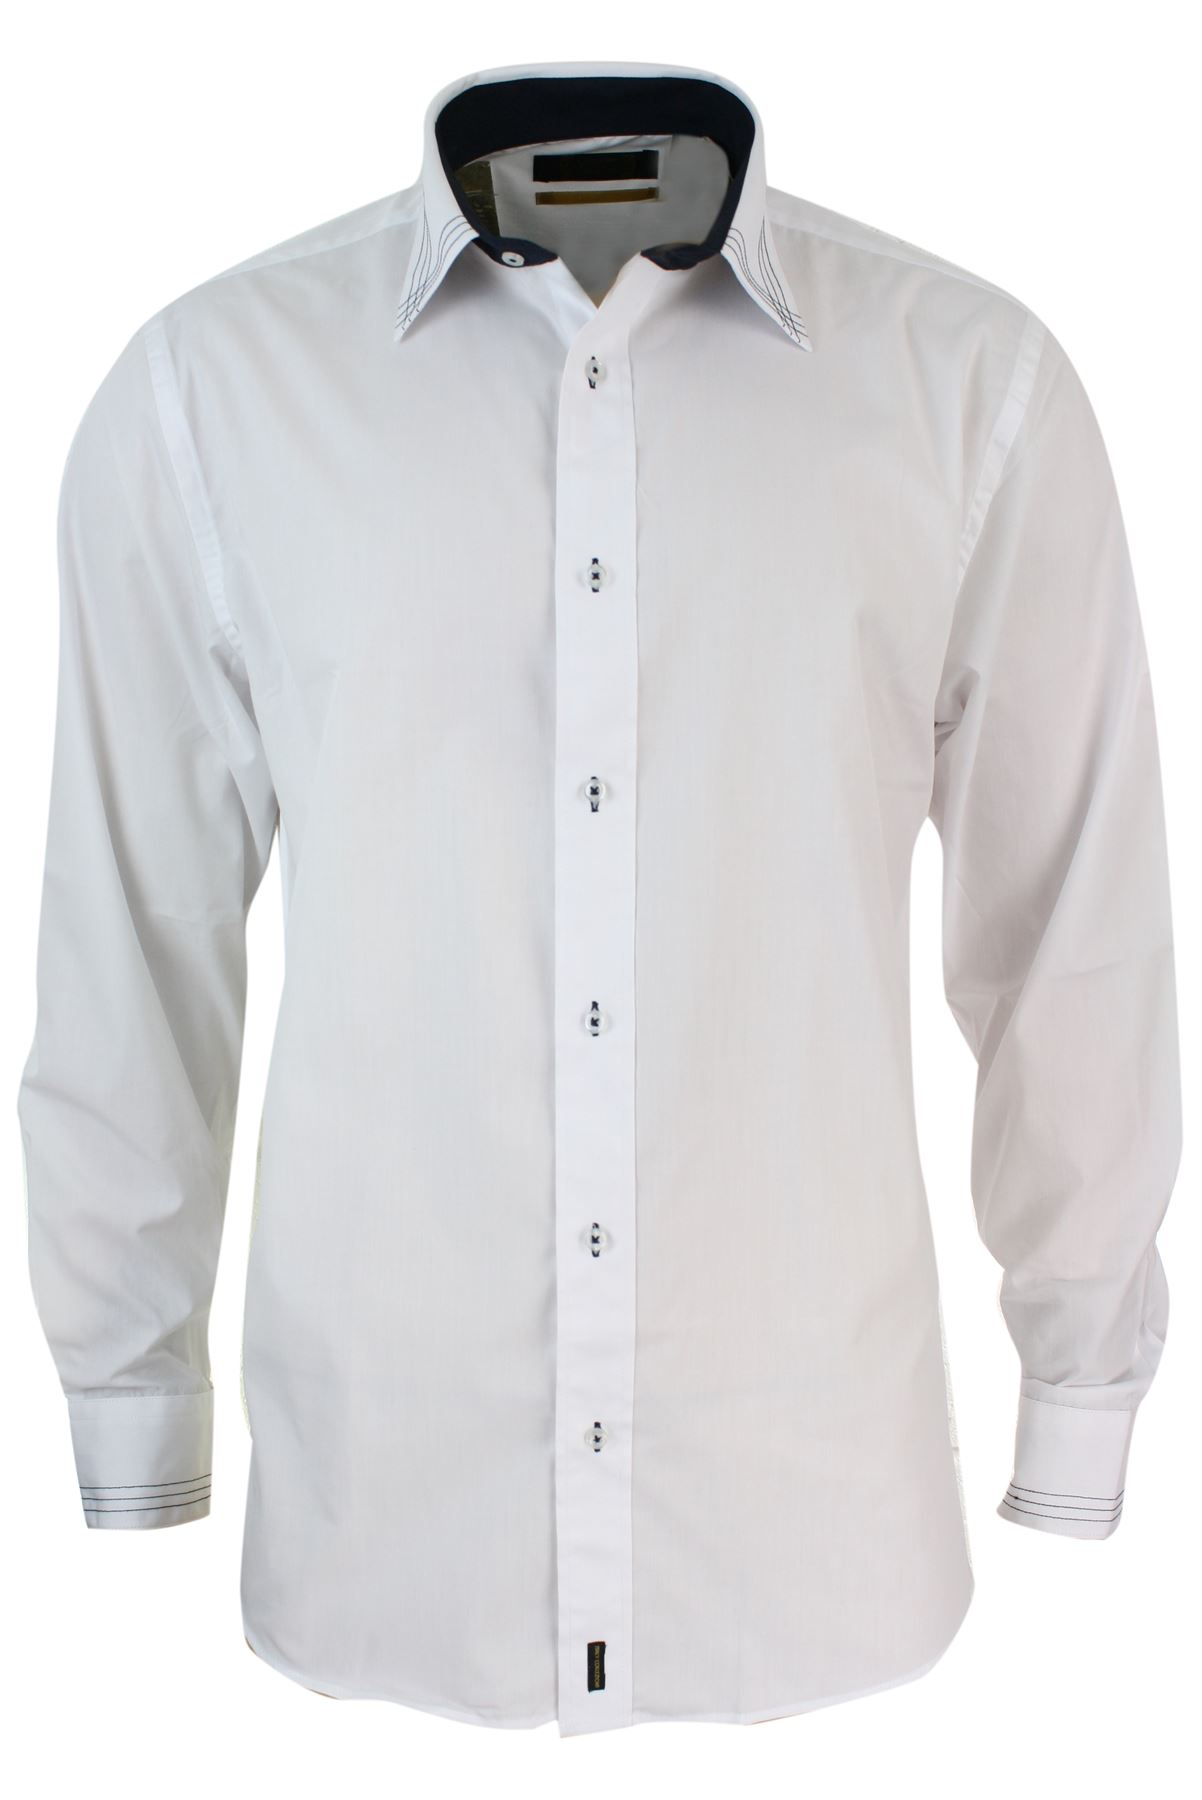 Shop for men's tailored fit, custom fitted dress shirts online at hereufilbk.gq Browse the latest Shirts styles for men from Jos. A Bank. Tailored Fit Dress Shirts. Shirts All Shirts Dress Shirts Short-Sleeve Dress Shirts Facet Value White/Cream (21) White/Cream (21) Facet Value Yellow.